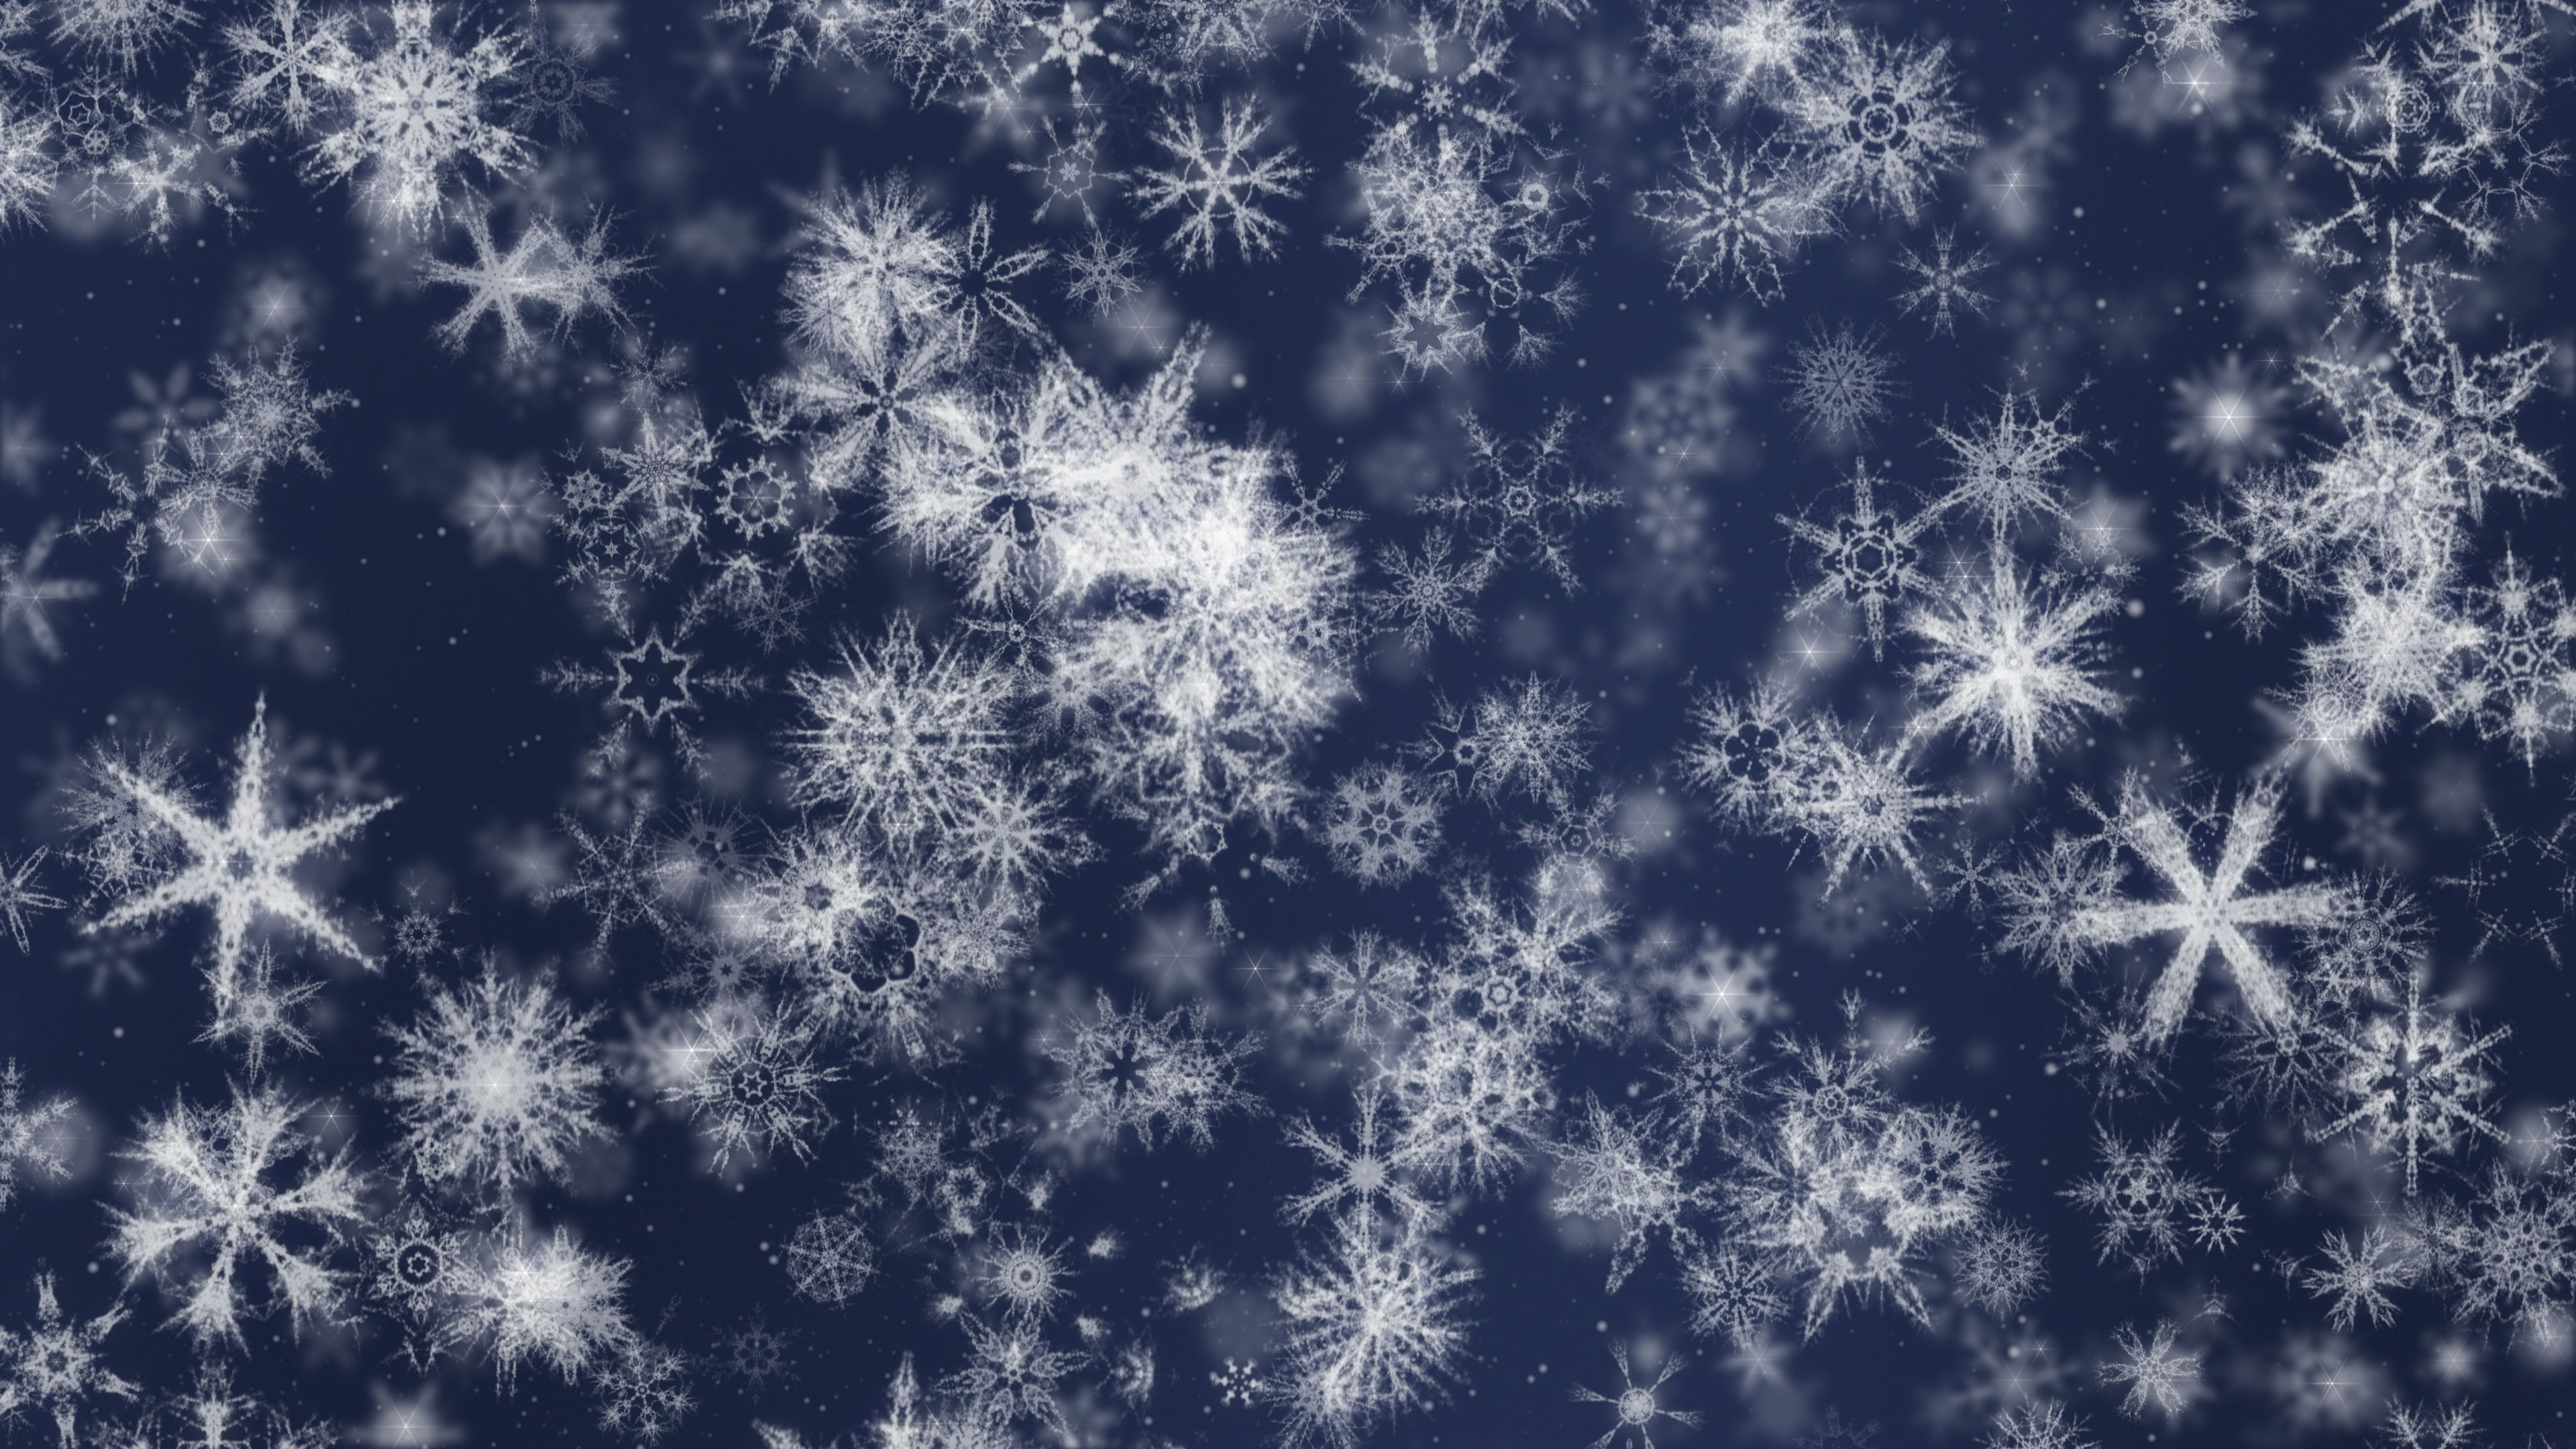 Pretty Snow 3 Downloops Creative Motion Backgrounds